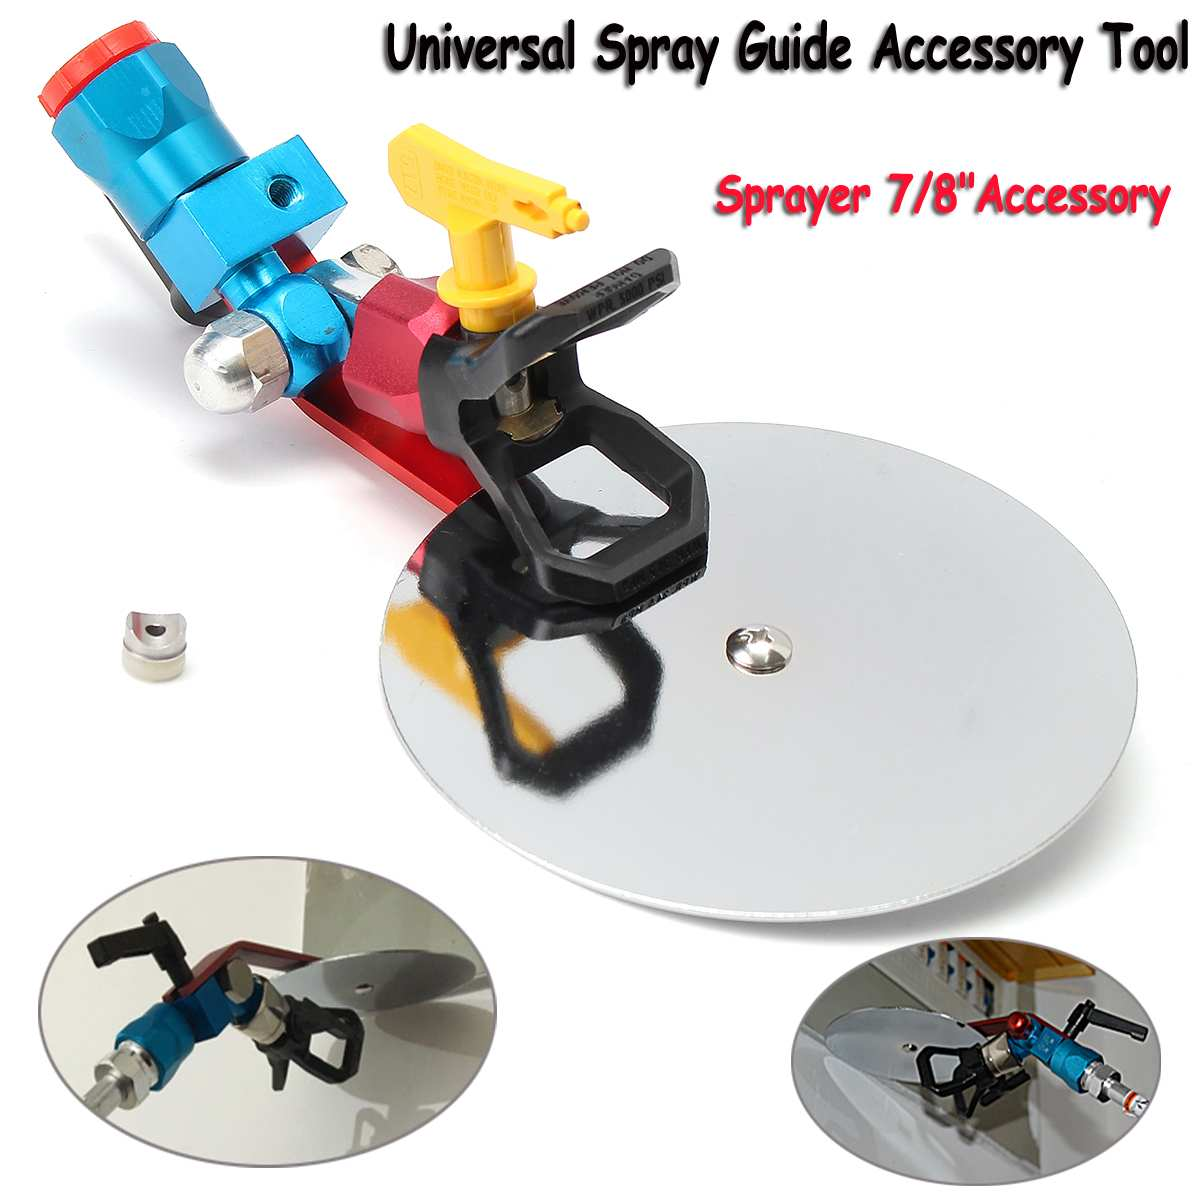 Spray Guide Accessory Tool for 7/8 Spary G u n Paint Sprayer with Airless Spray Tip Power Tool Spraying Machine Guide Tool